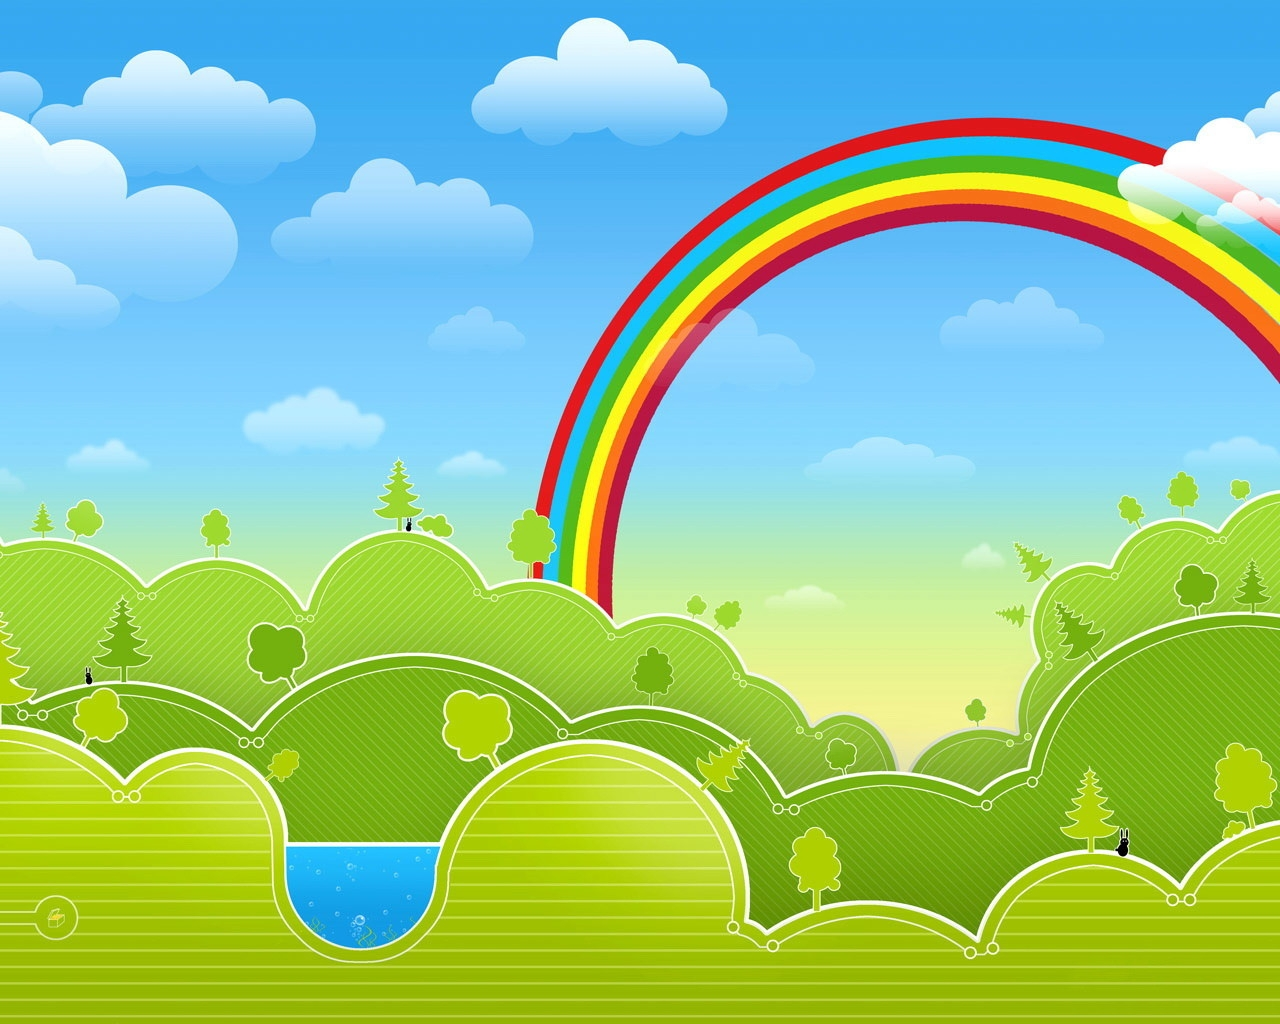 1280x1024 Download Wallpaper 1280x1024 Drawing, Rainbow, Multicolored